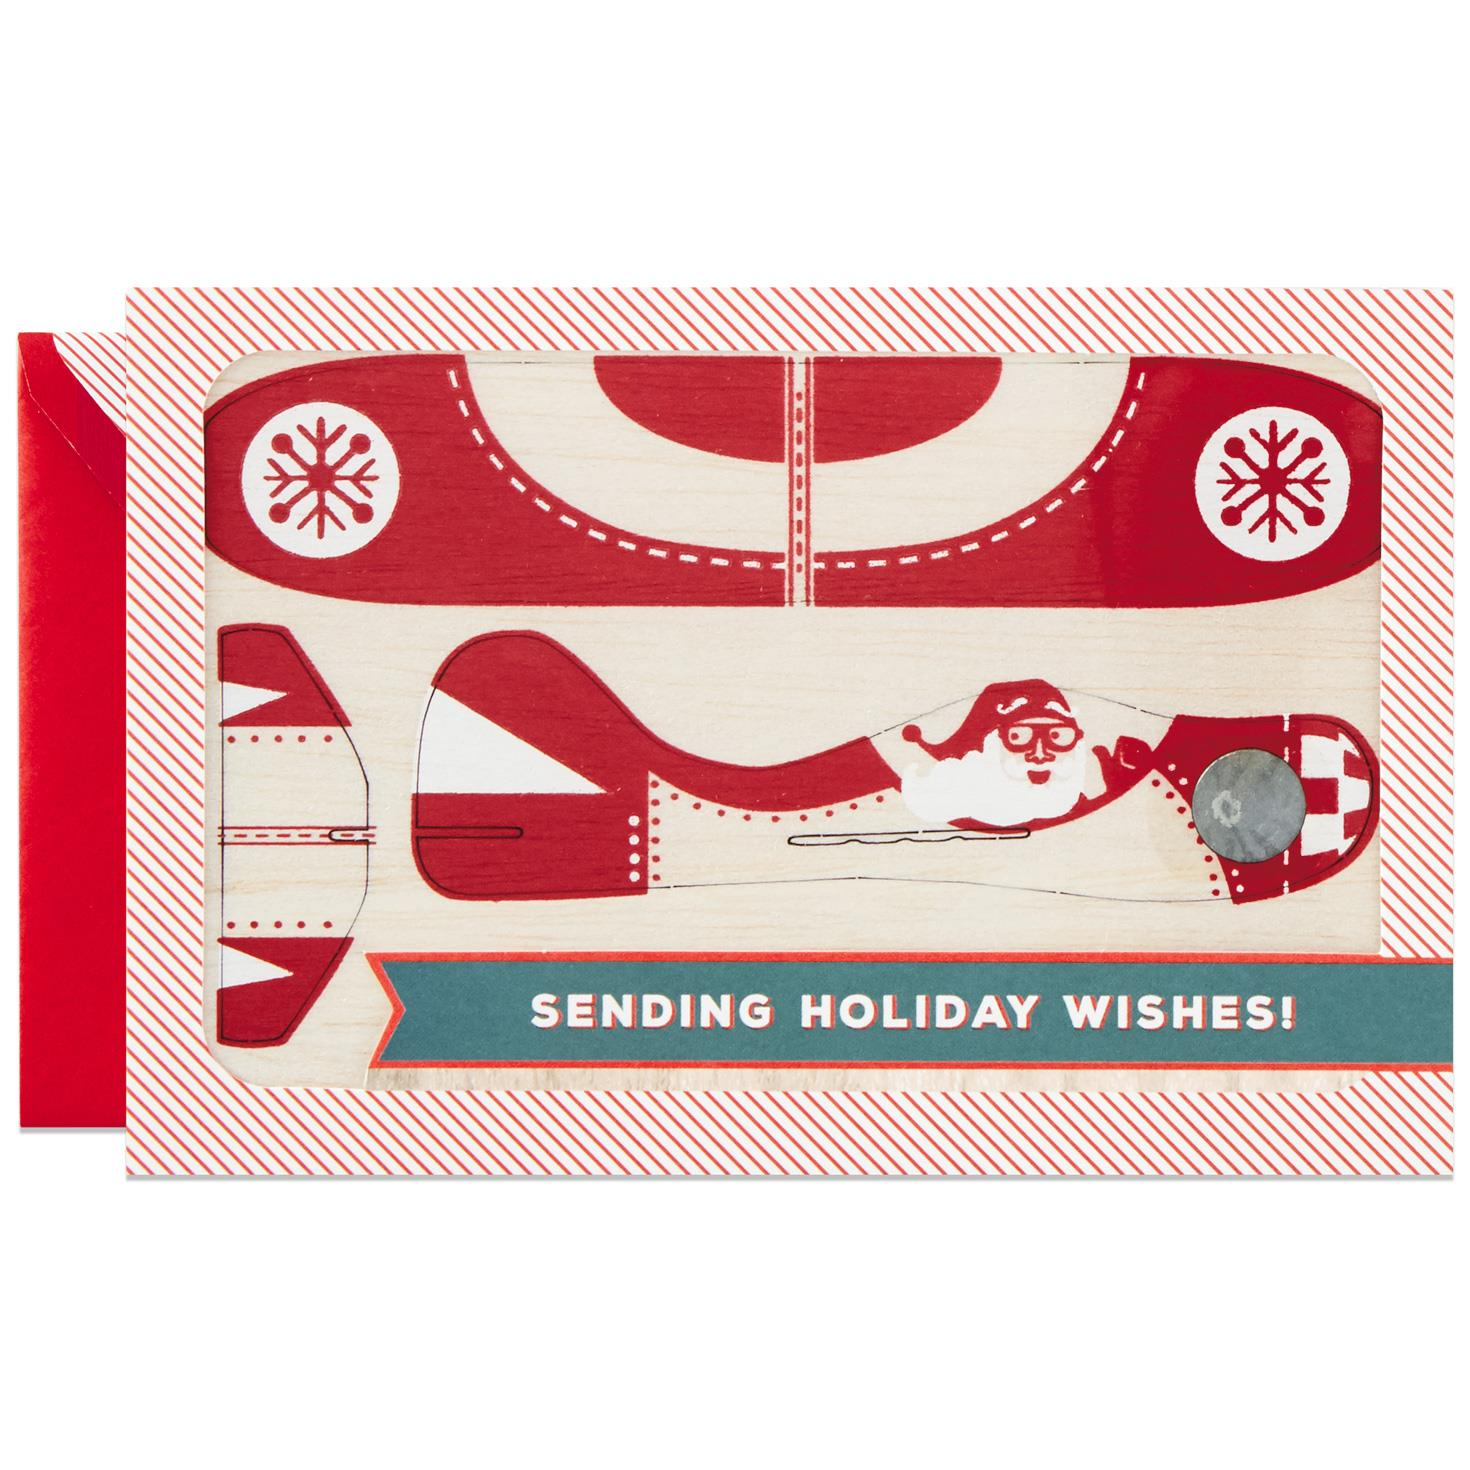 Holiday Wishes Christmas Card With Removable Toy Plane Greeting